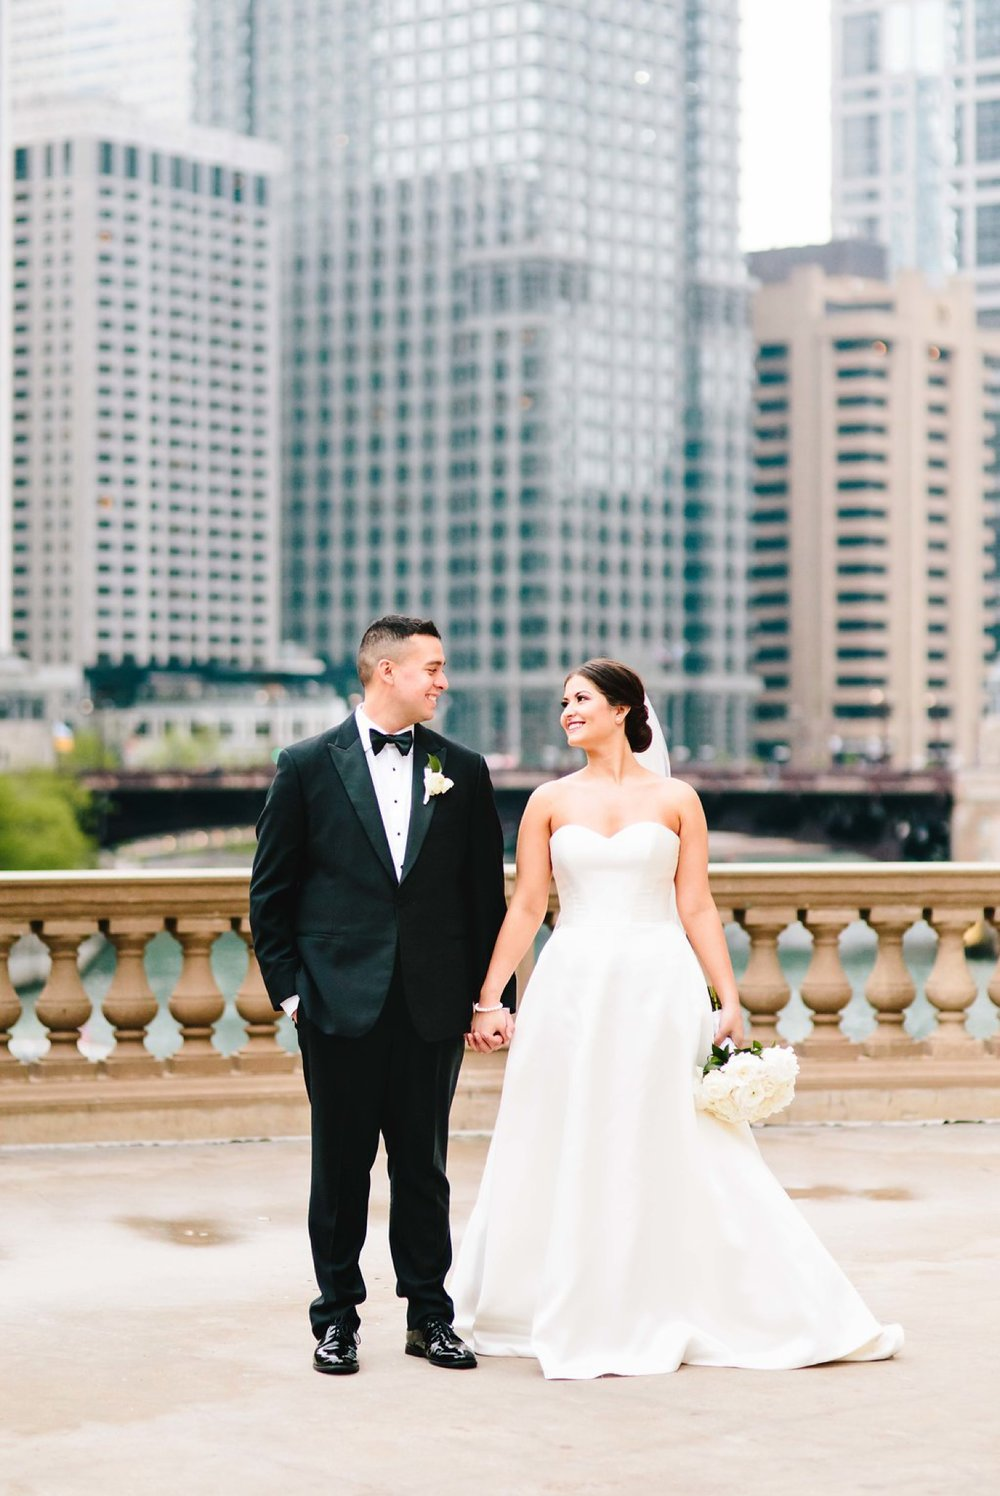 chicago-fine-art-wedding-photography-sherwood46